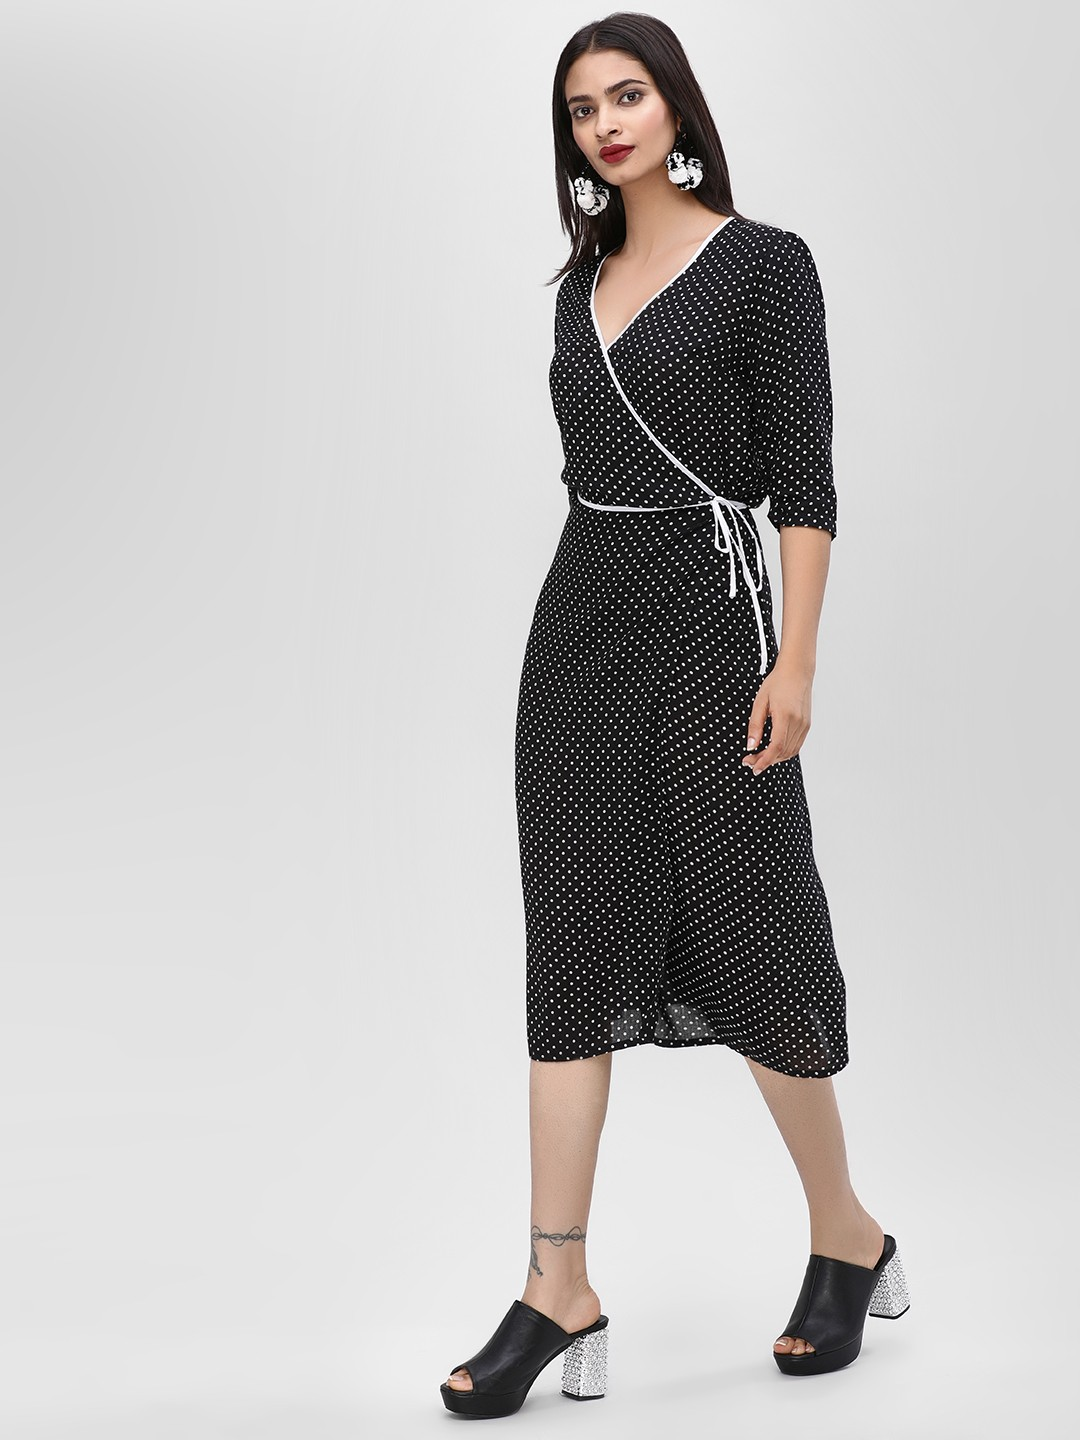 KOOVS Black Polka Dot Midi Dress 1